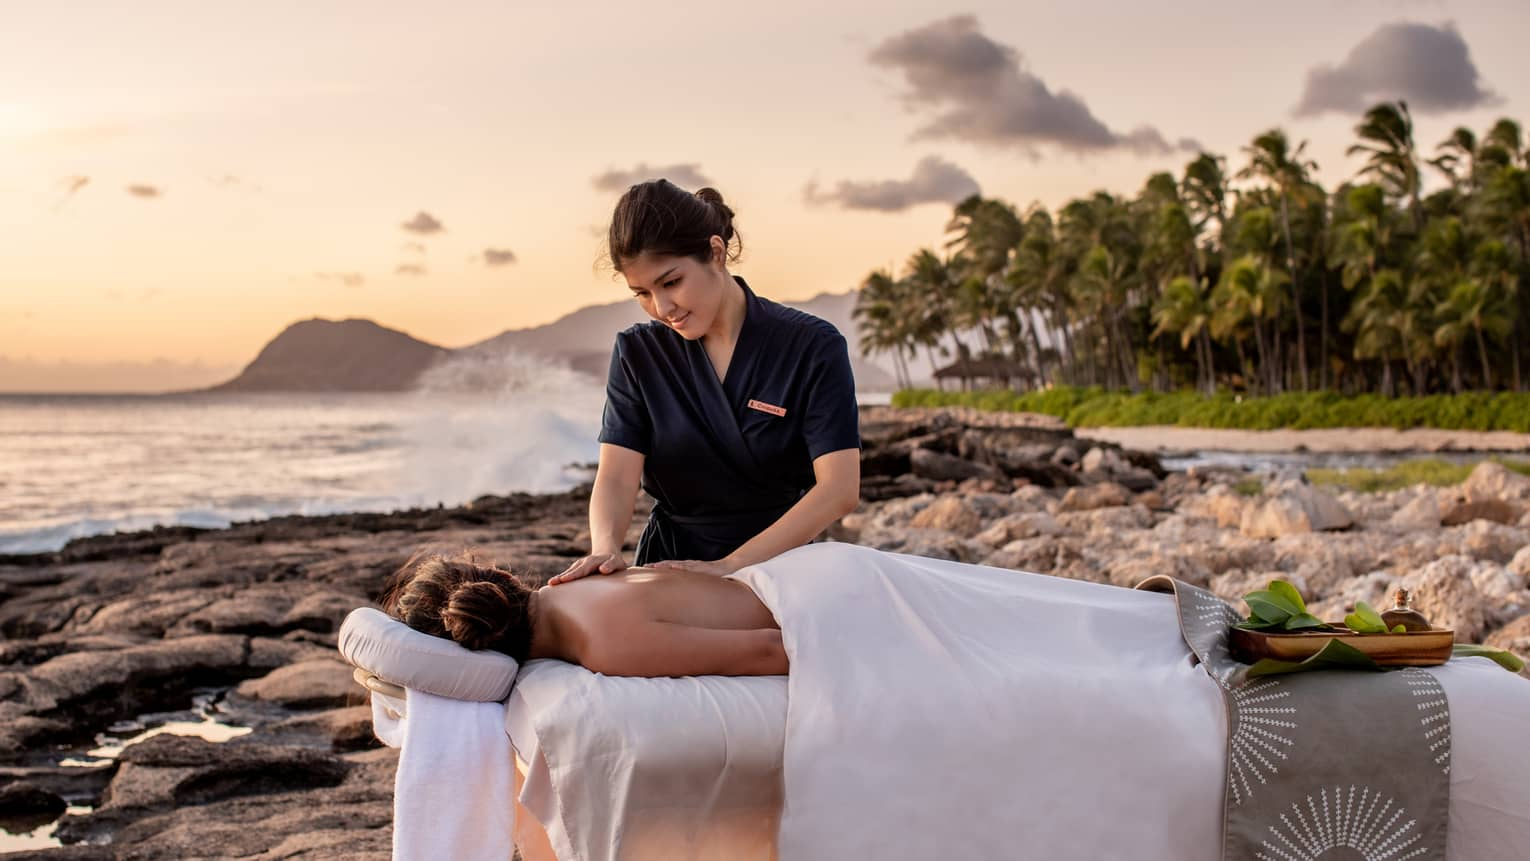 A four seasons guest receives a massage on the beach, as the sun sets in the distance